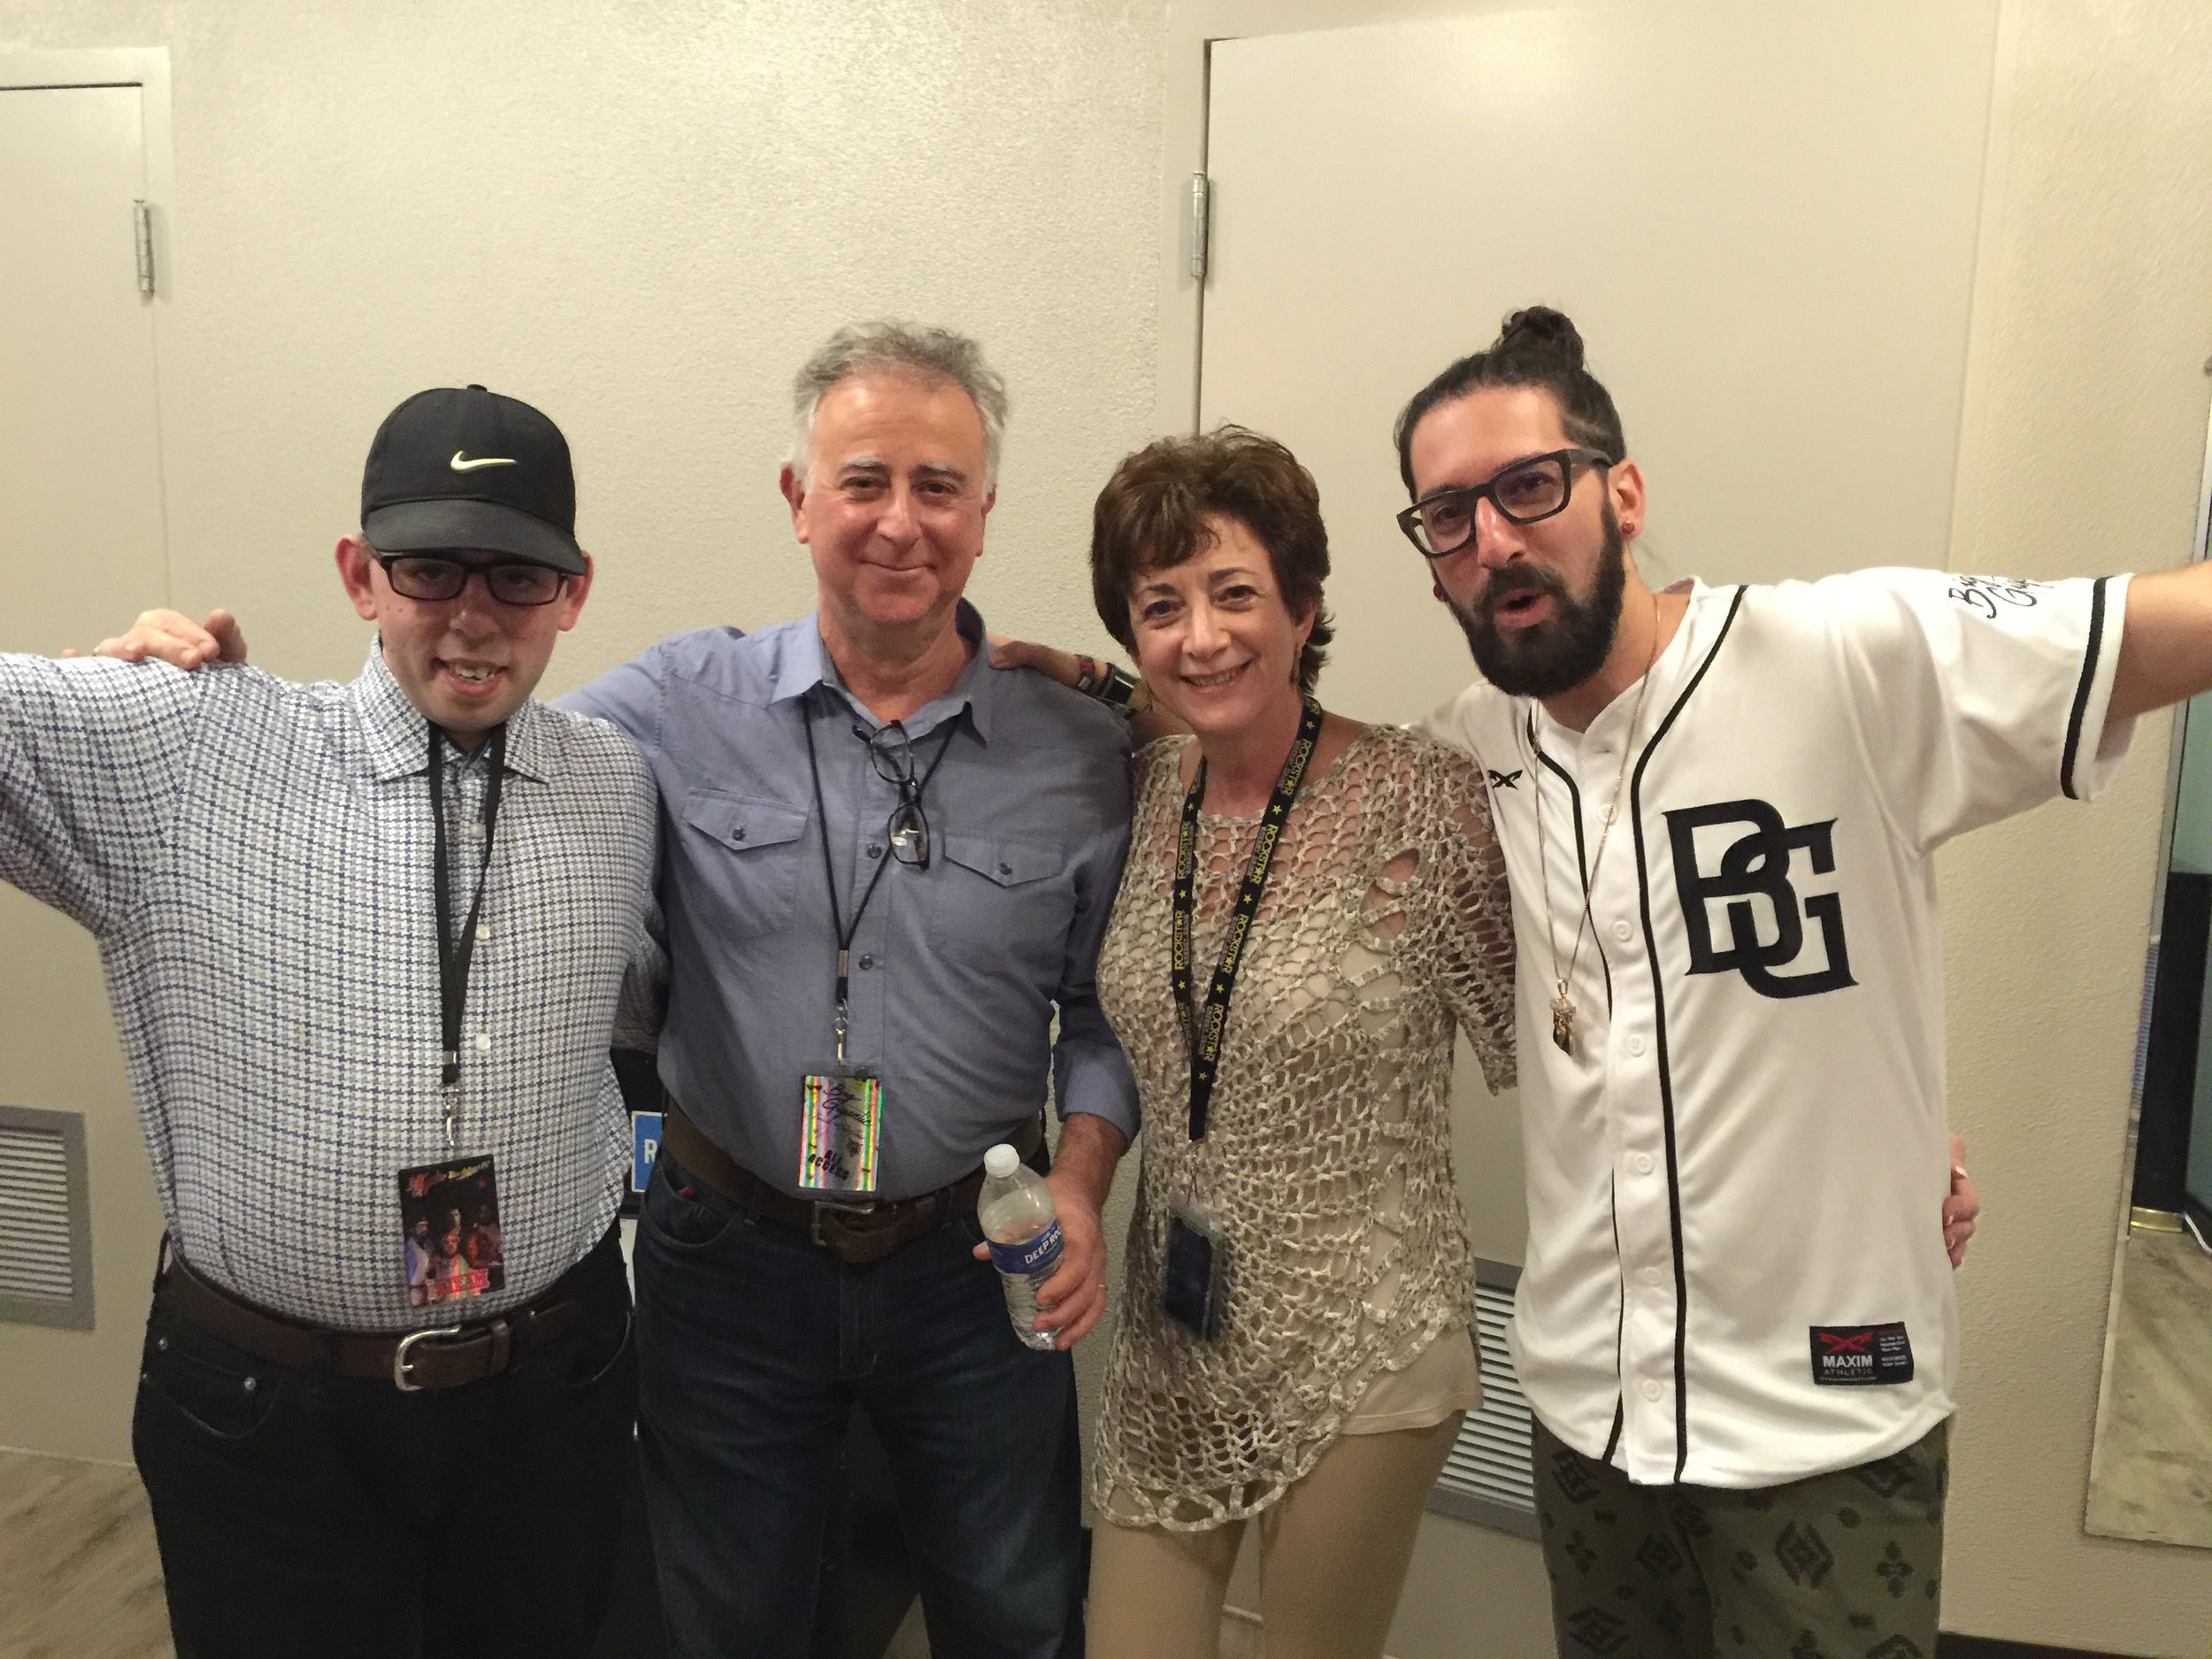 Our family unit backstage at Rowdytown IV. Herbie, Me, Melanie, and Jeremy. Clearly, family has become the most important aspect of my life.